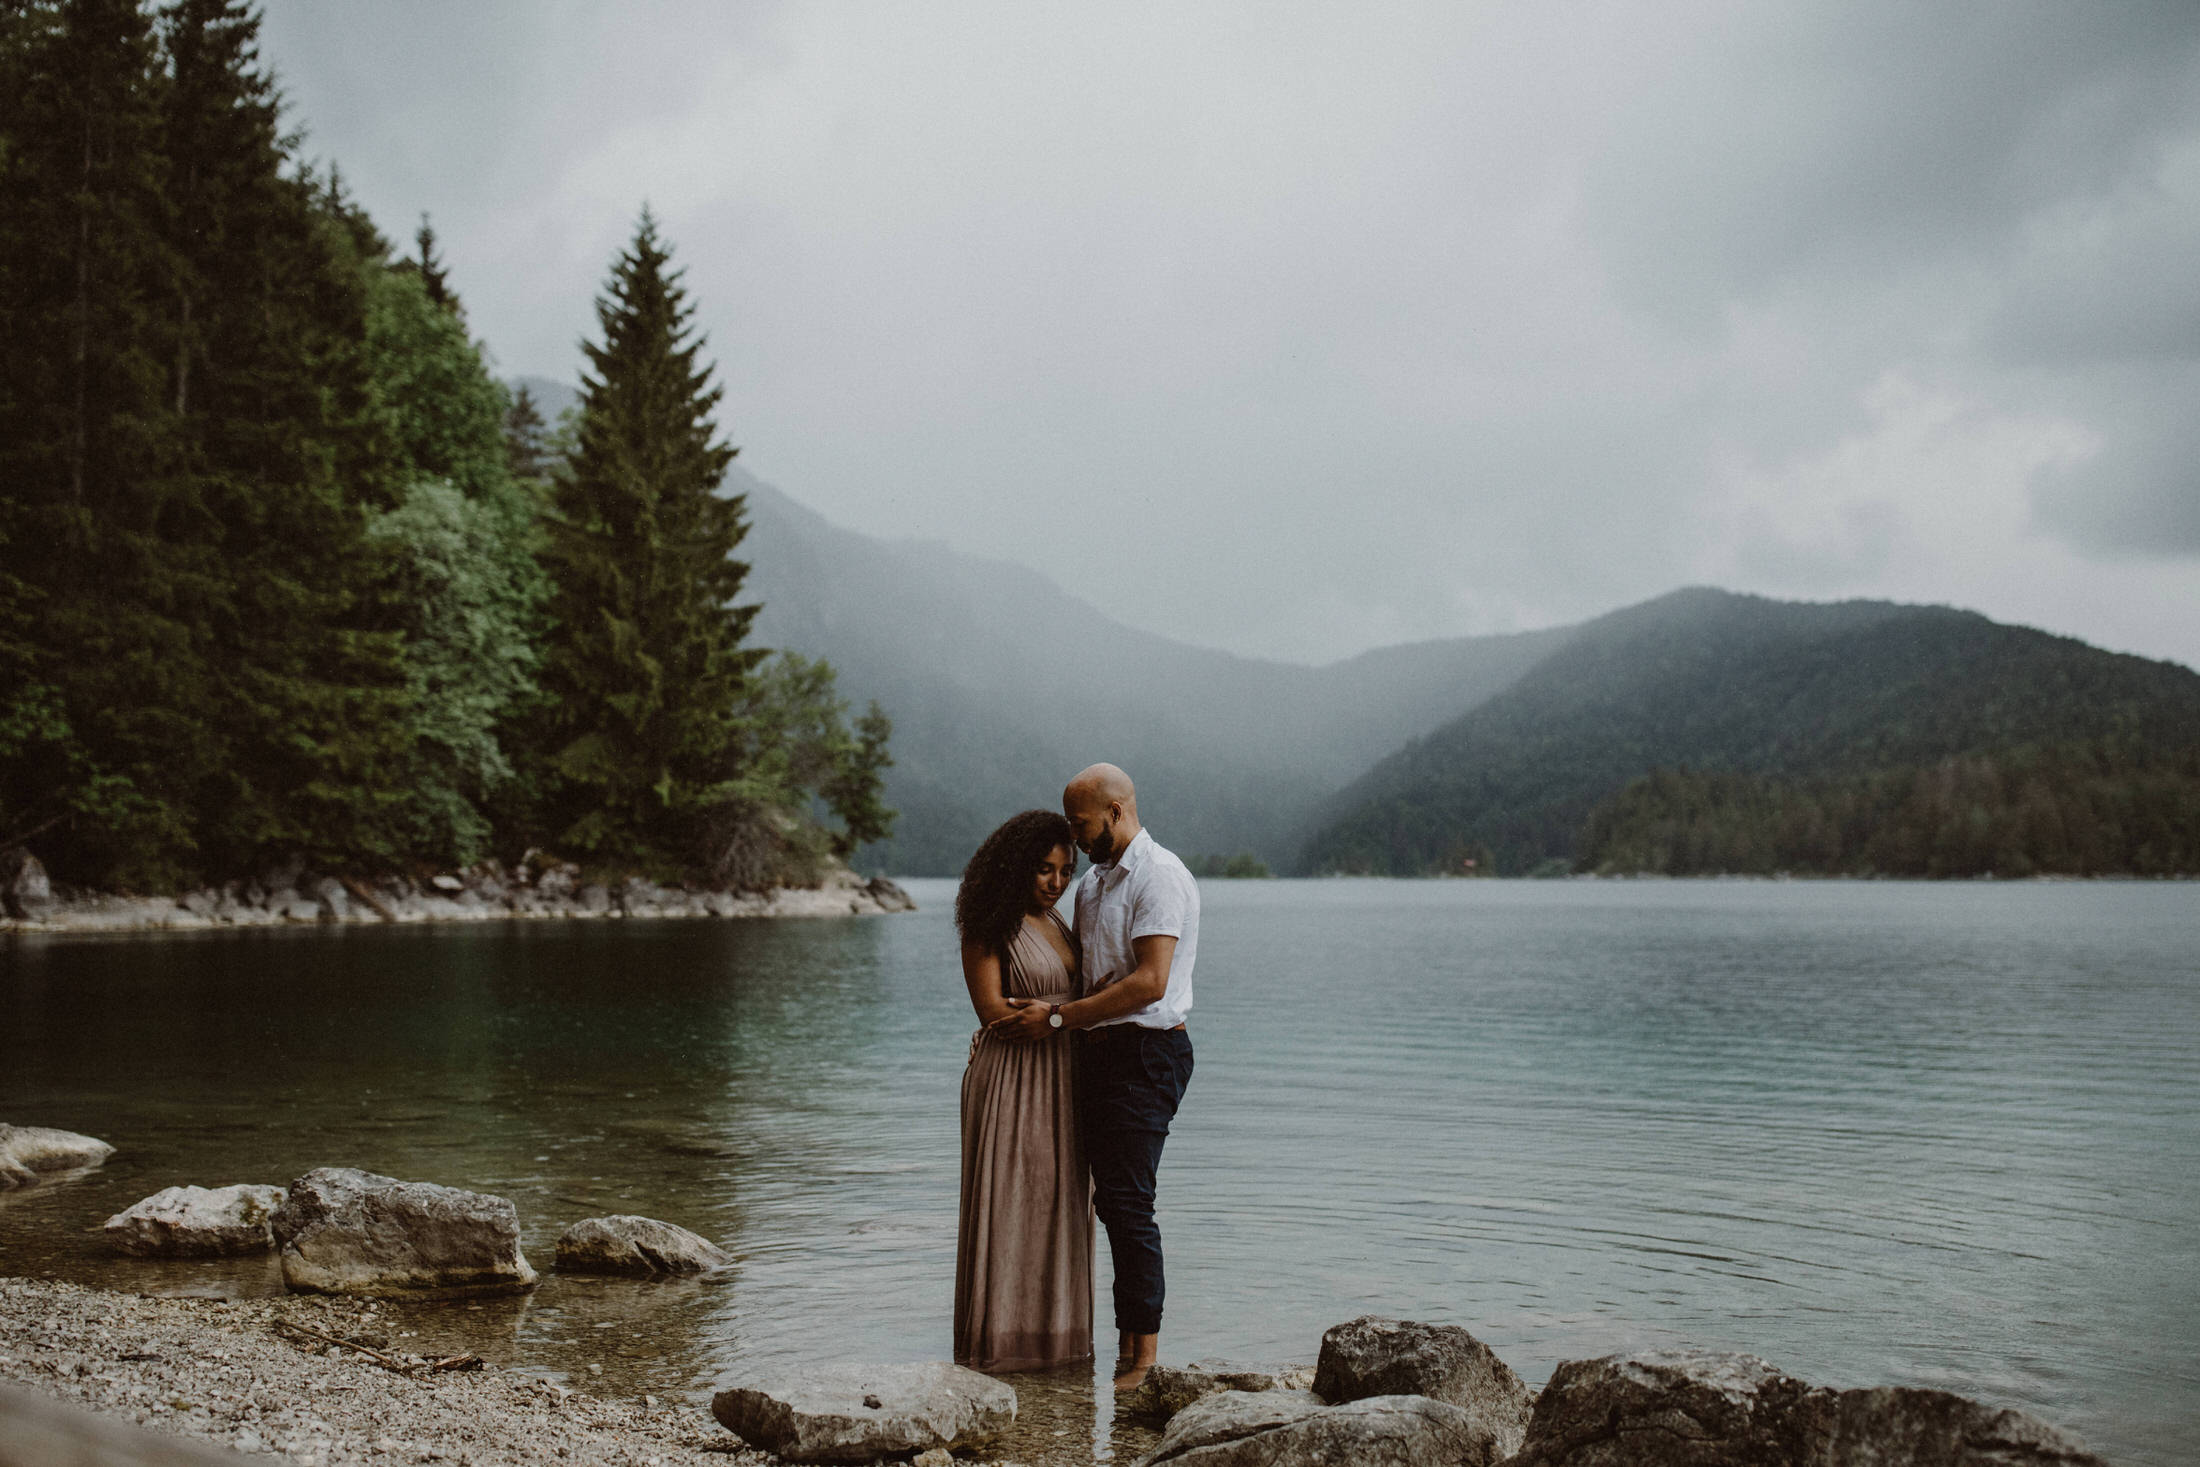 breanna-and-justin-engagement-photos-eibsee-garmisch-partenkirchen-0034